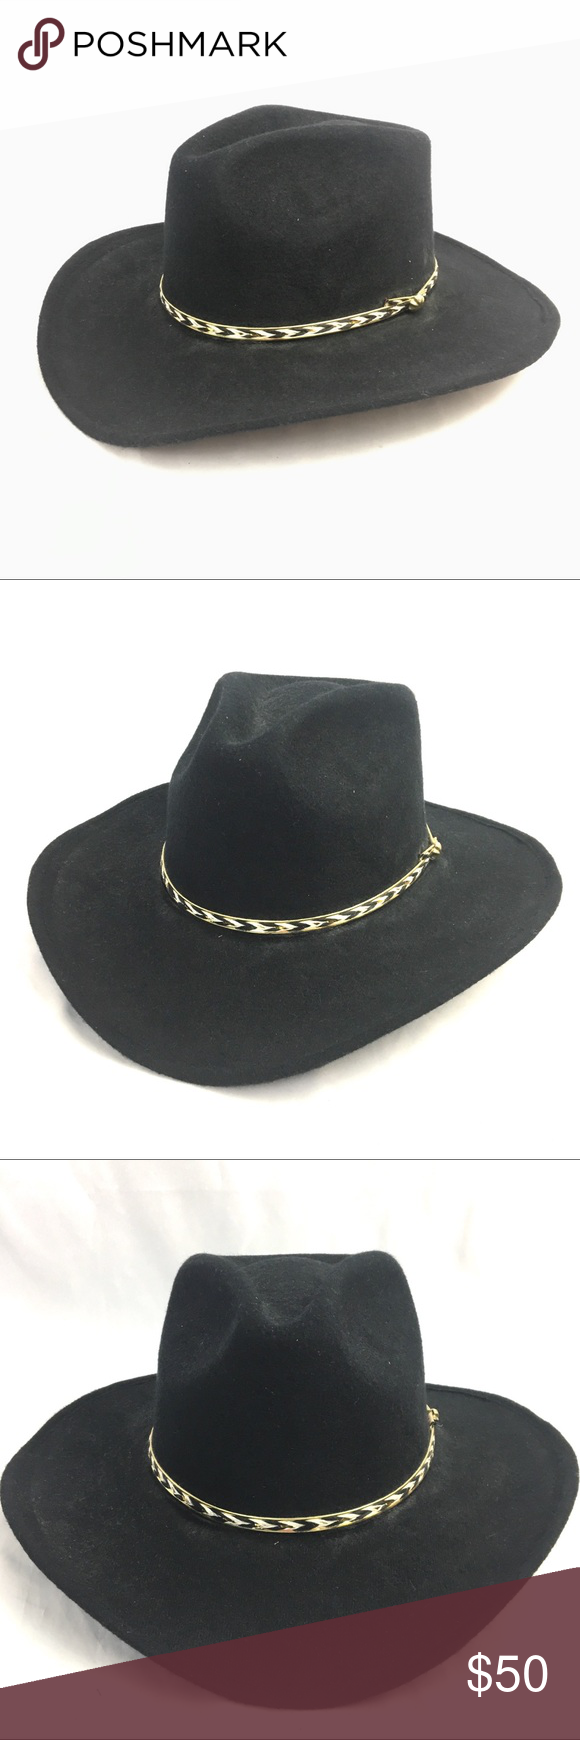 67dd13ca48b ... reduced pigalle cowboy hat mens size 7 1 2 black 7x felt pigalle texas  hat company ...